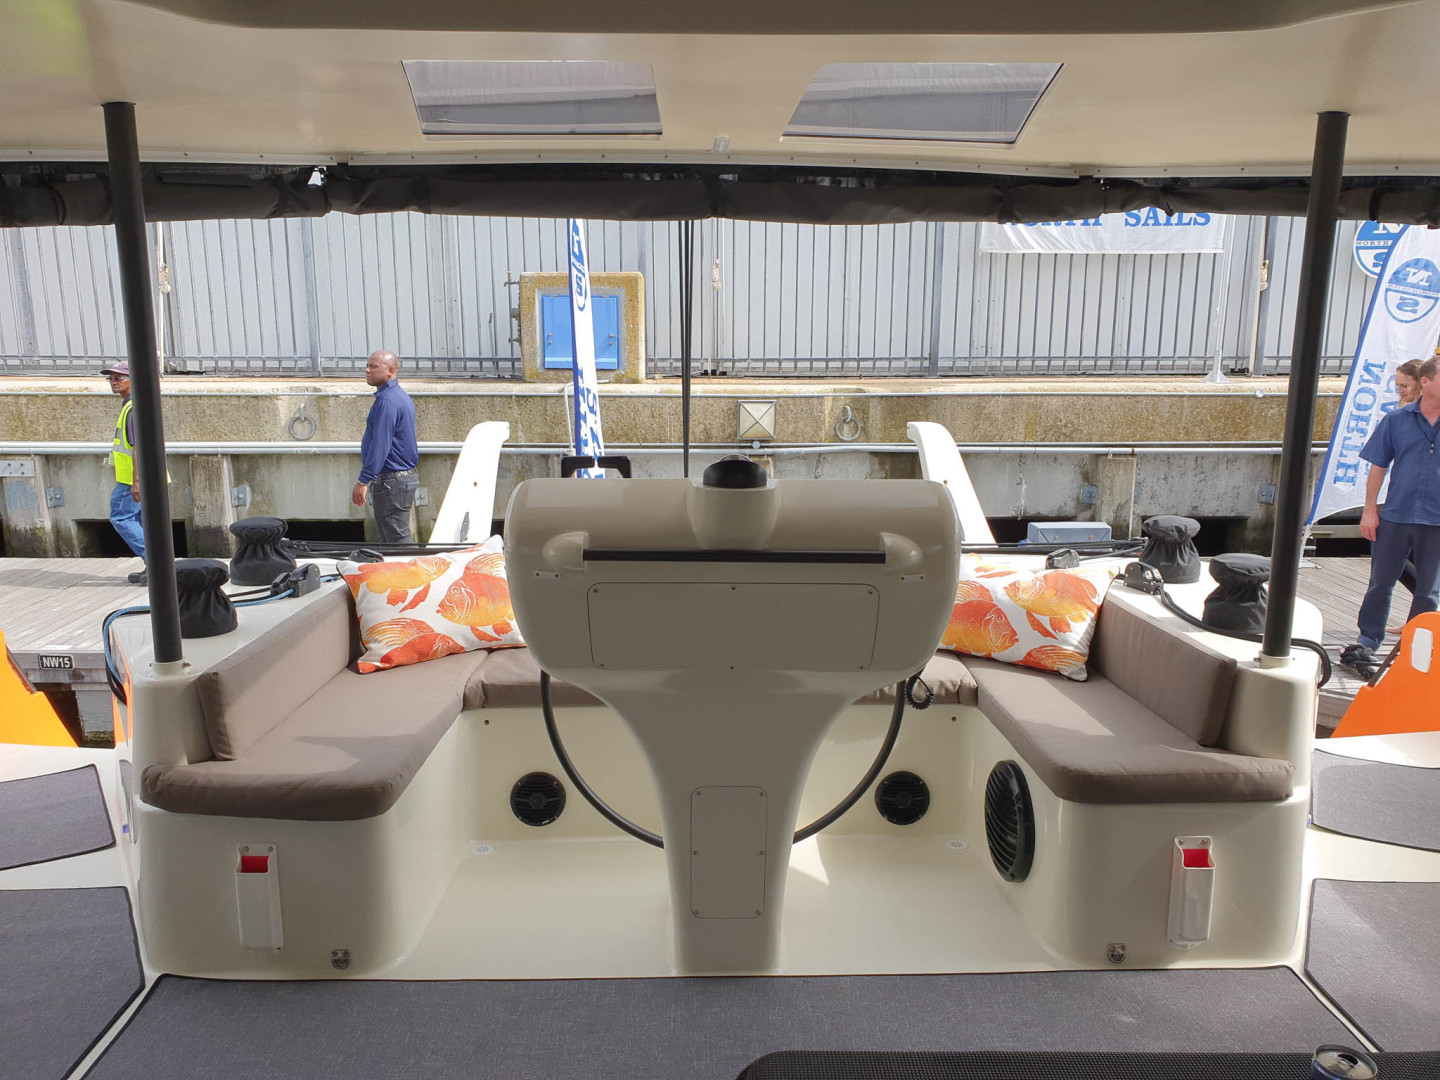 2019 Scape Yachts 40 Sport 19